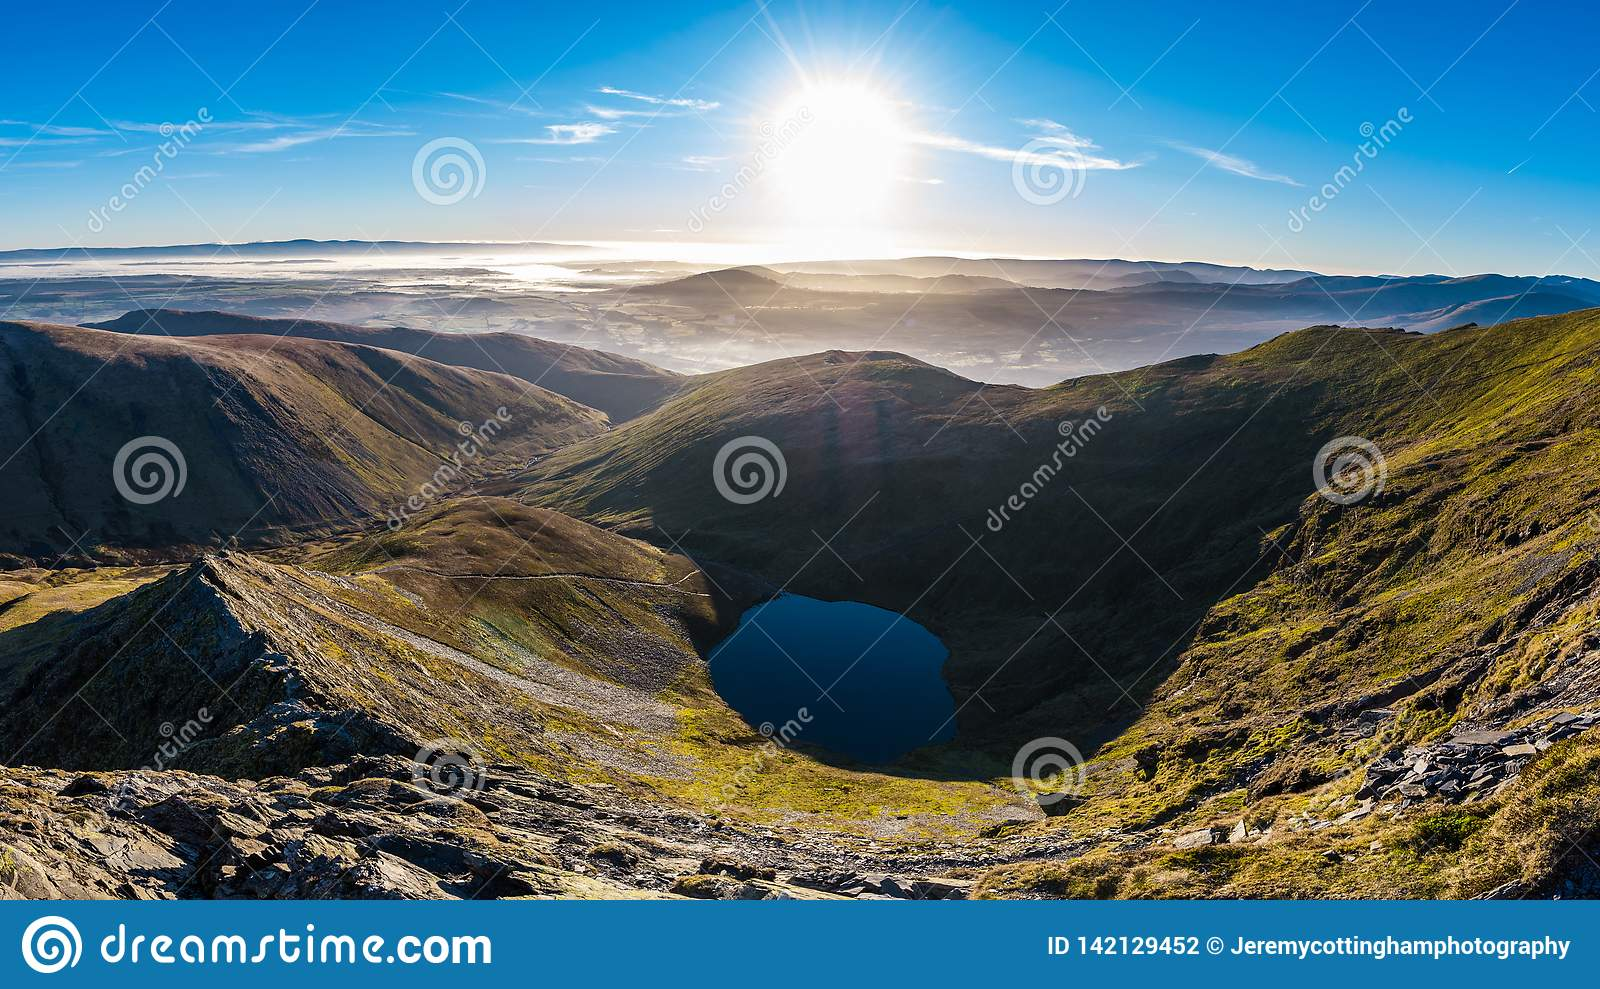 Morning view from Sharp Edge on Blencathra, Lake District, Cumbria with lake tarn and cloud inversion over mountains in the